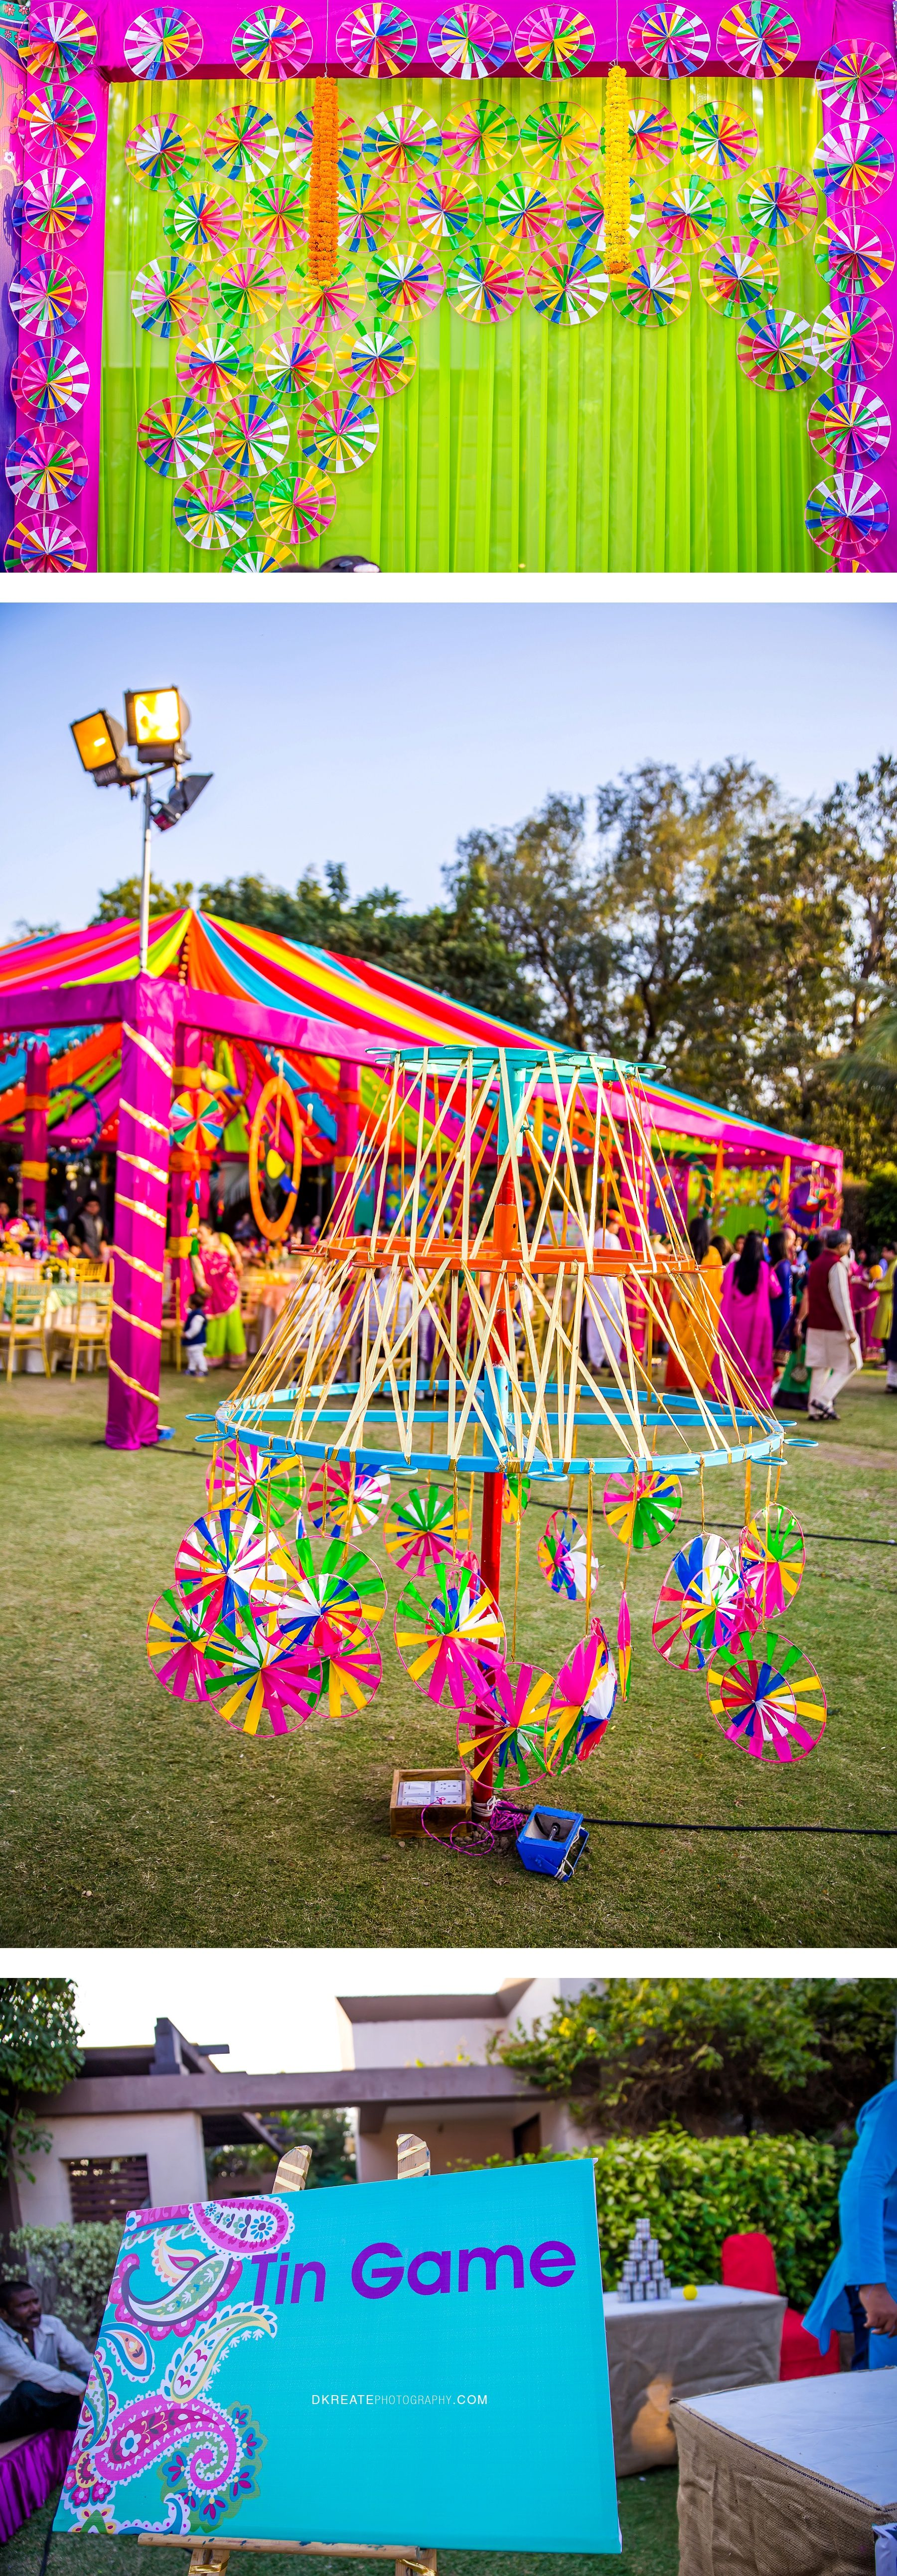 Indian wedding decor inspiration indian wedding backdrop ideas indian wedding decor inspiration indian wedding backdrop ideas colorful mela themed colorful printed sign boards for games and designated areas junglespirit Images